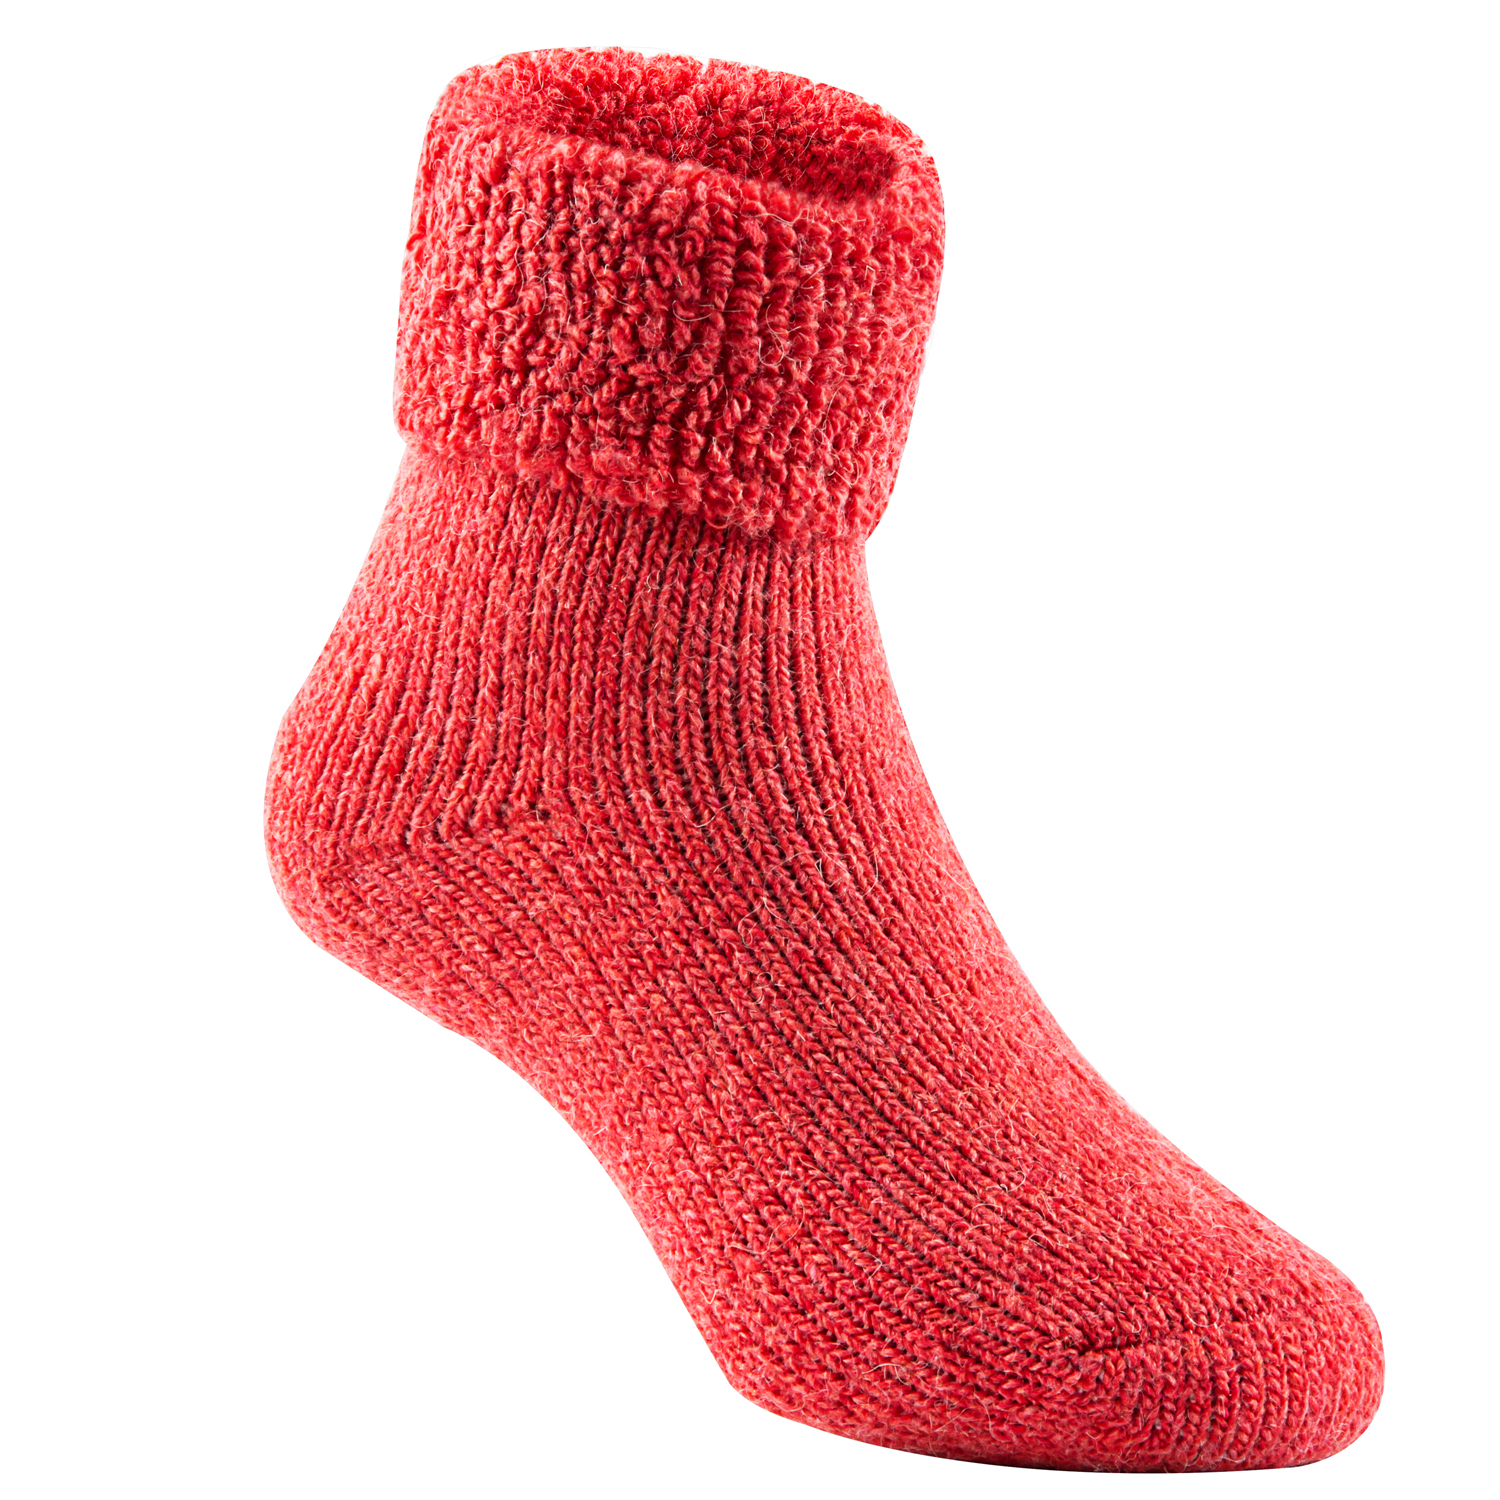 Lian LifeStyle Girls 3 Pairs Extra Thick Wool Boot Socks Crew Plain Color LK01 0Y-5Y